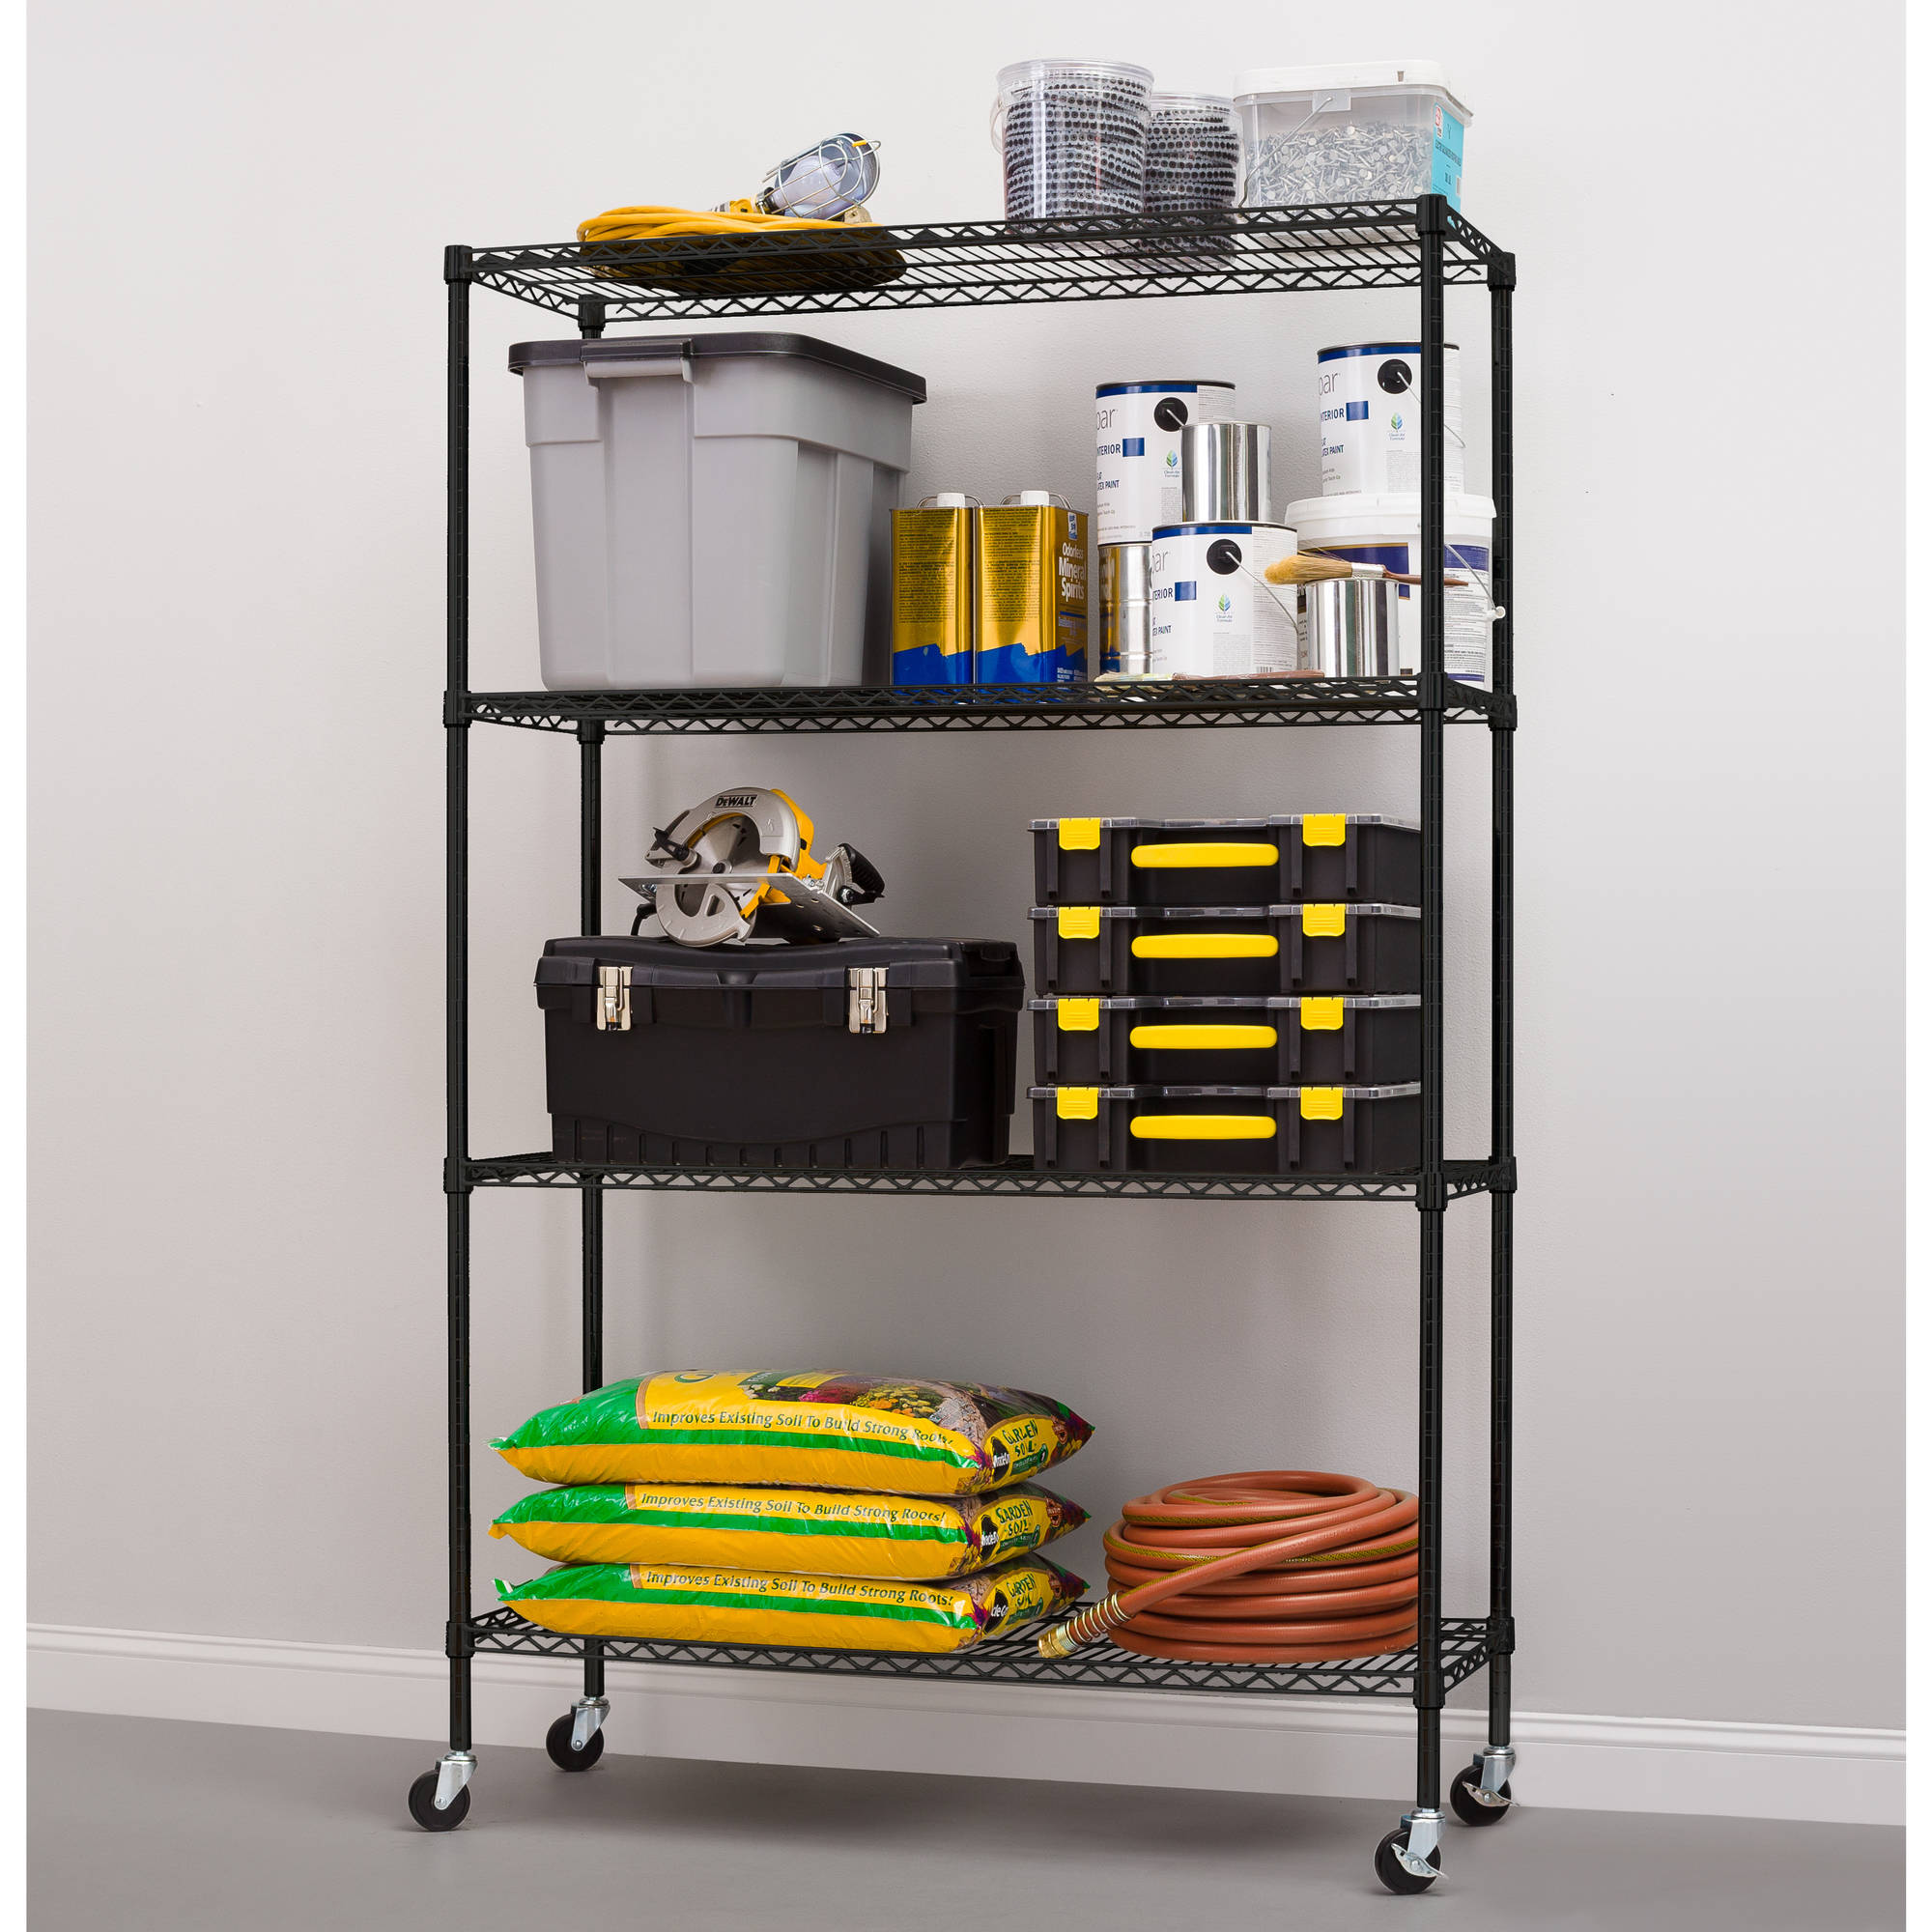 Hyper Tough 4-Shelf Commercial Grade Wire Shelving System with Bonus Shelf Liners and Casters, Black